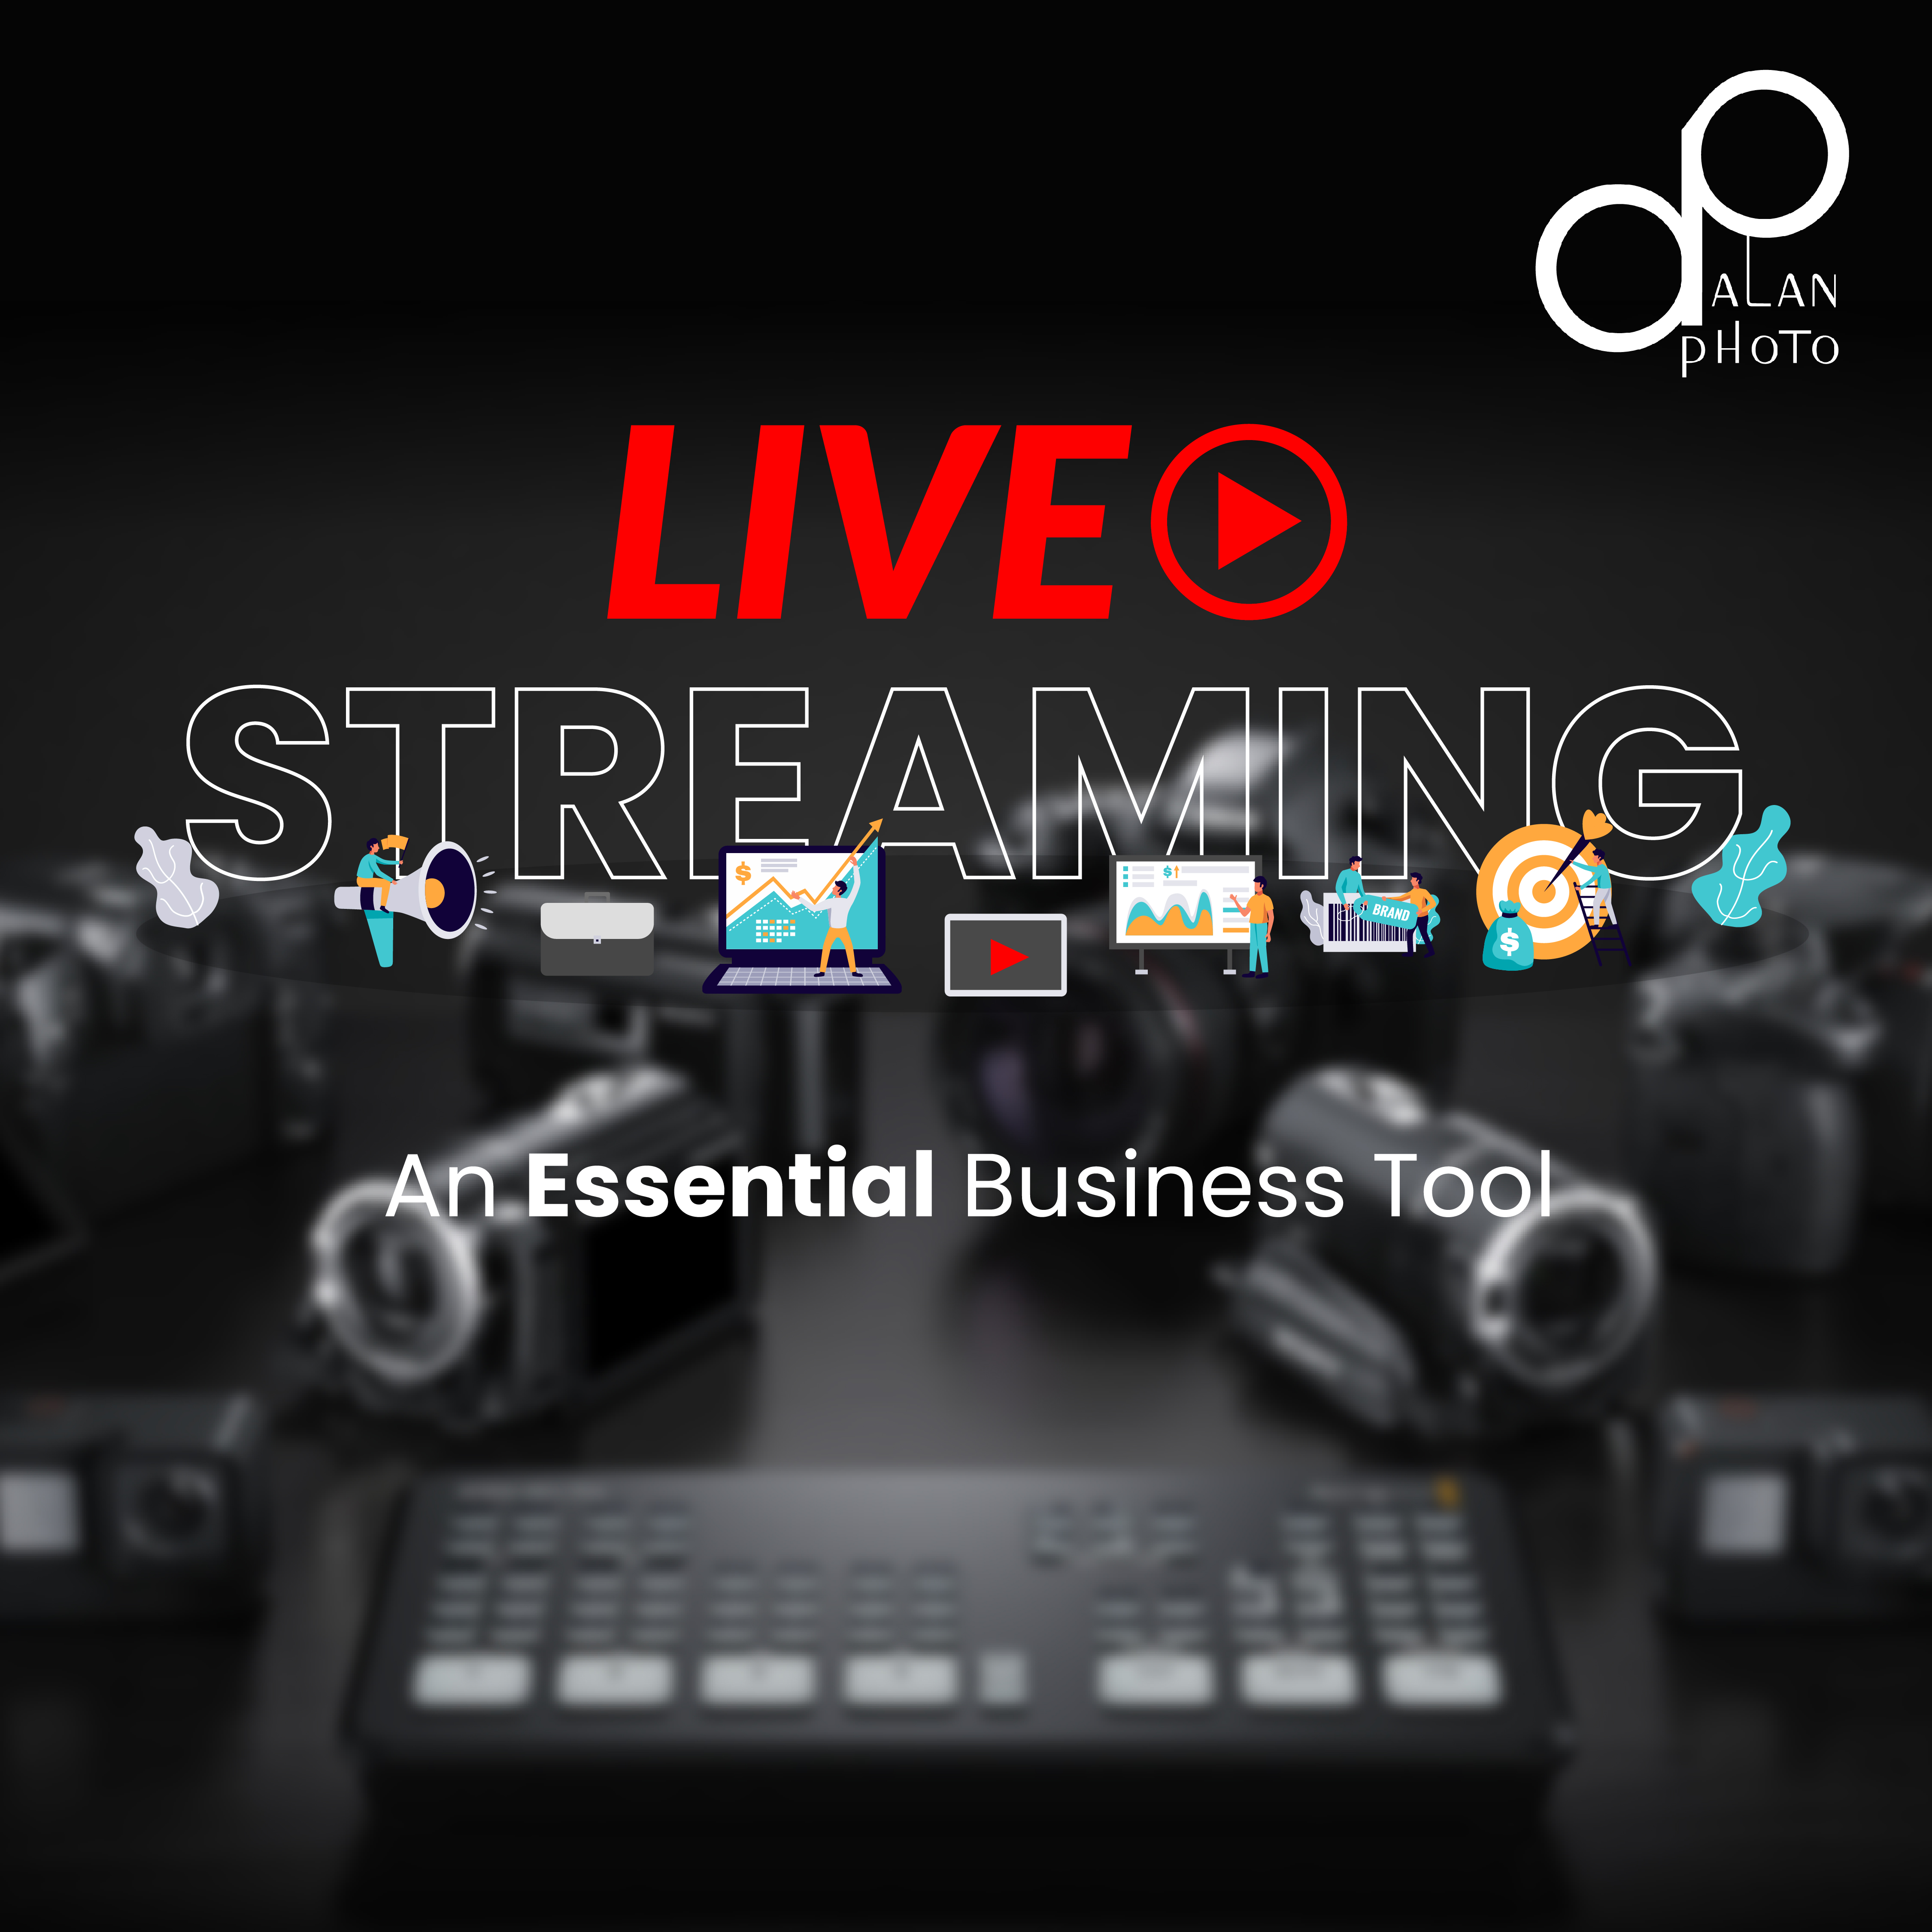 Live-Streaming, an Essential Business Tool